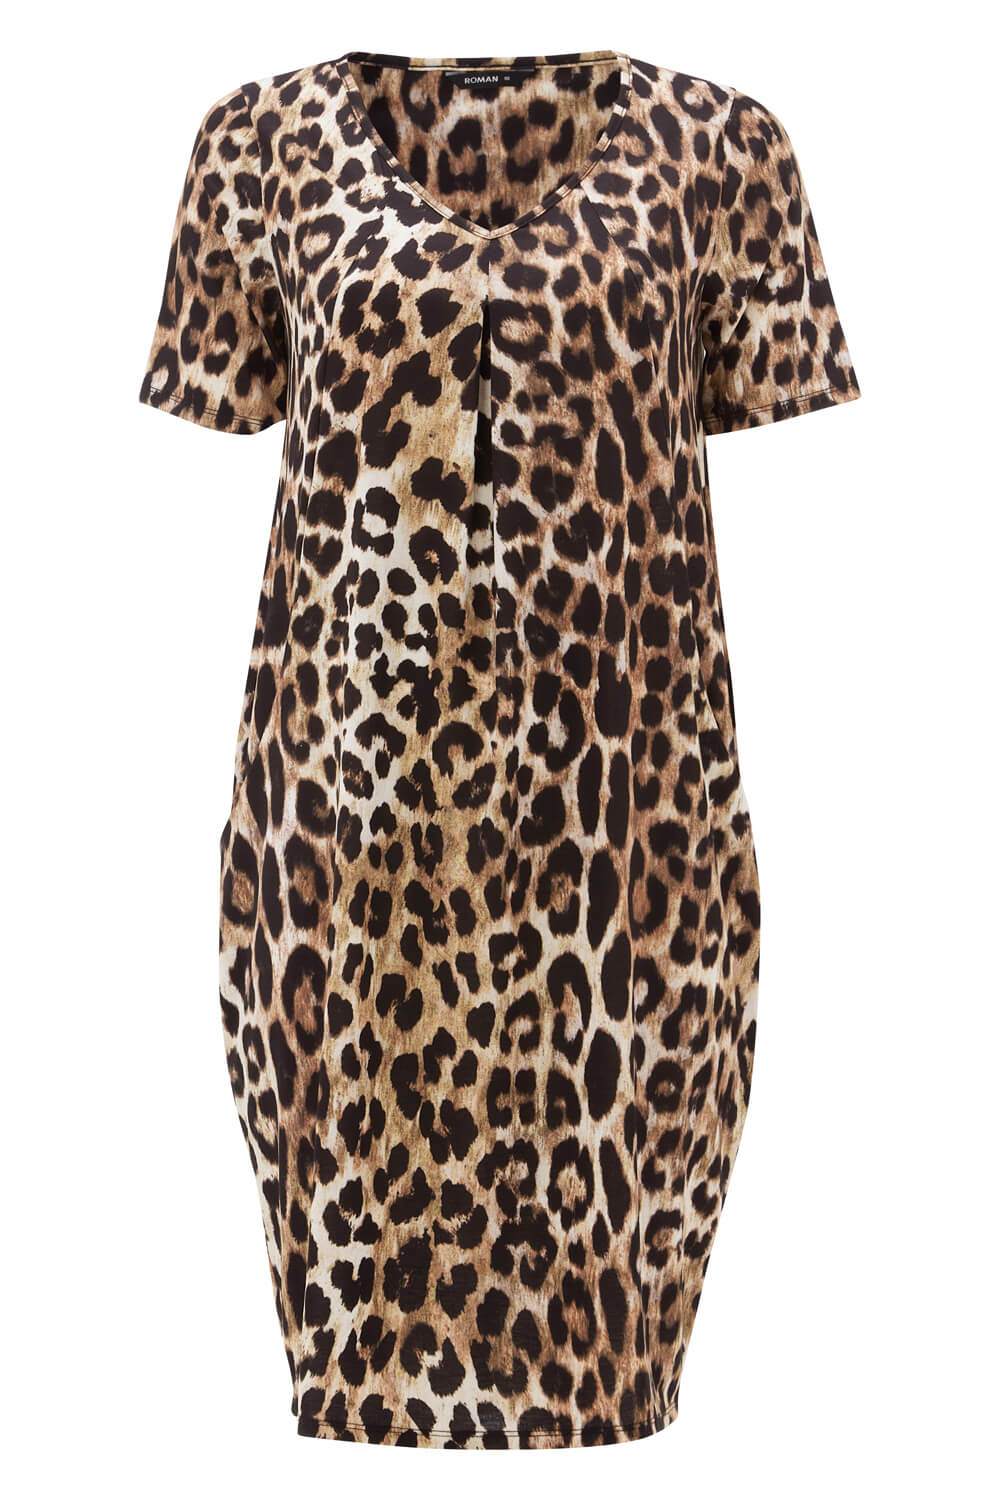 Roman-Originals-Women-Leopard-Animal-Print-Dress-with-Pockets thumbnail 15